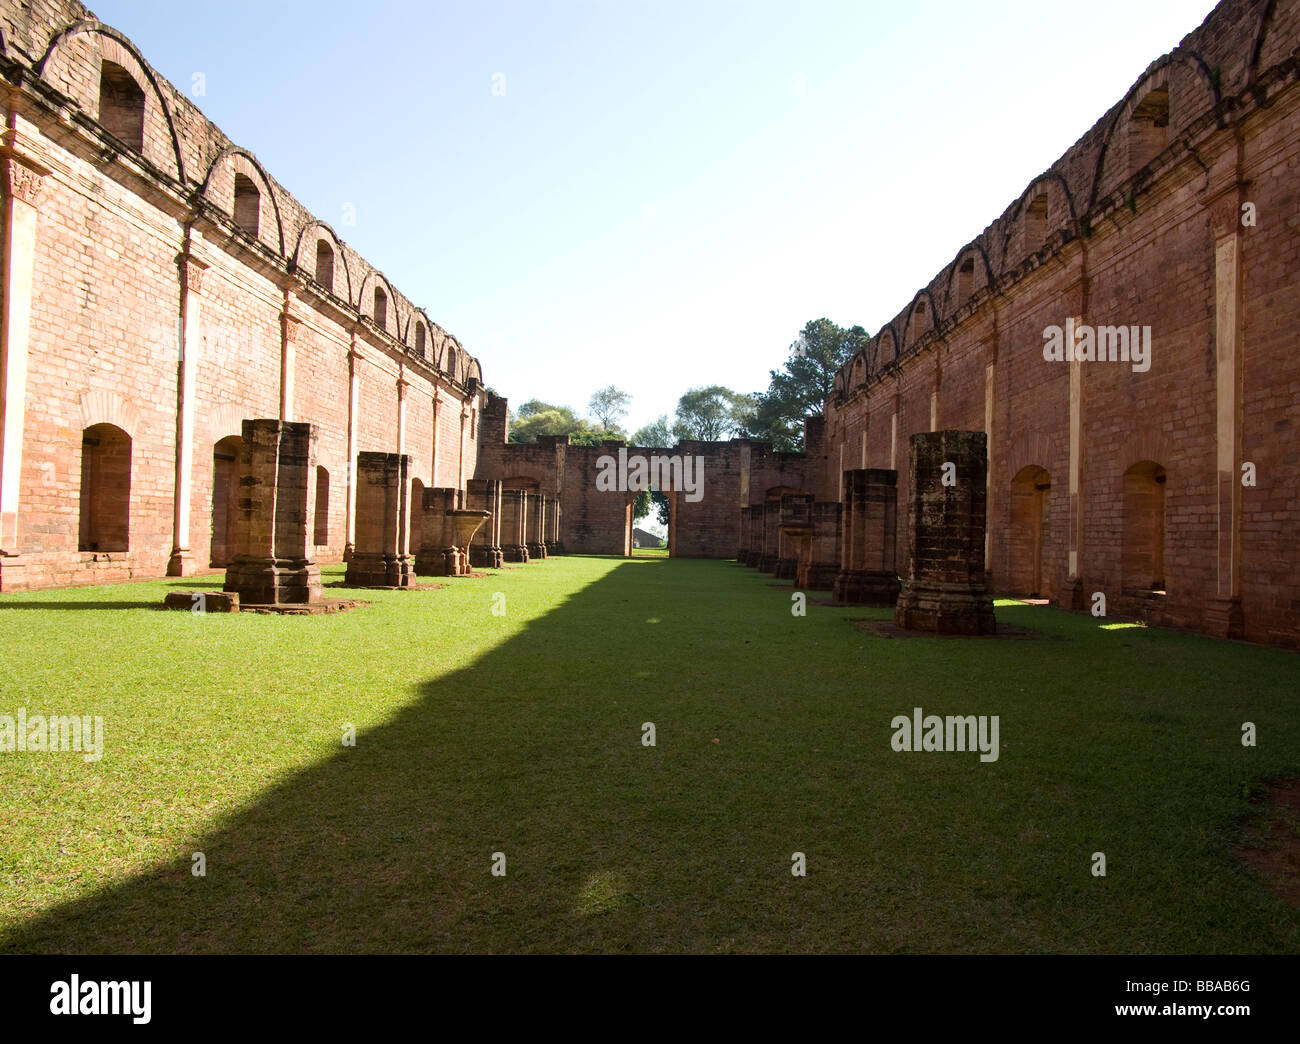 Paraguay.Jesuits Reductions.Church of Reduction of Jésus.UNESCO World Heritage Site. - Stock Image